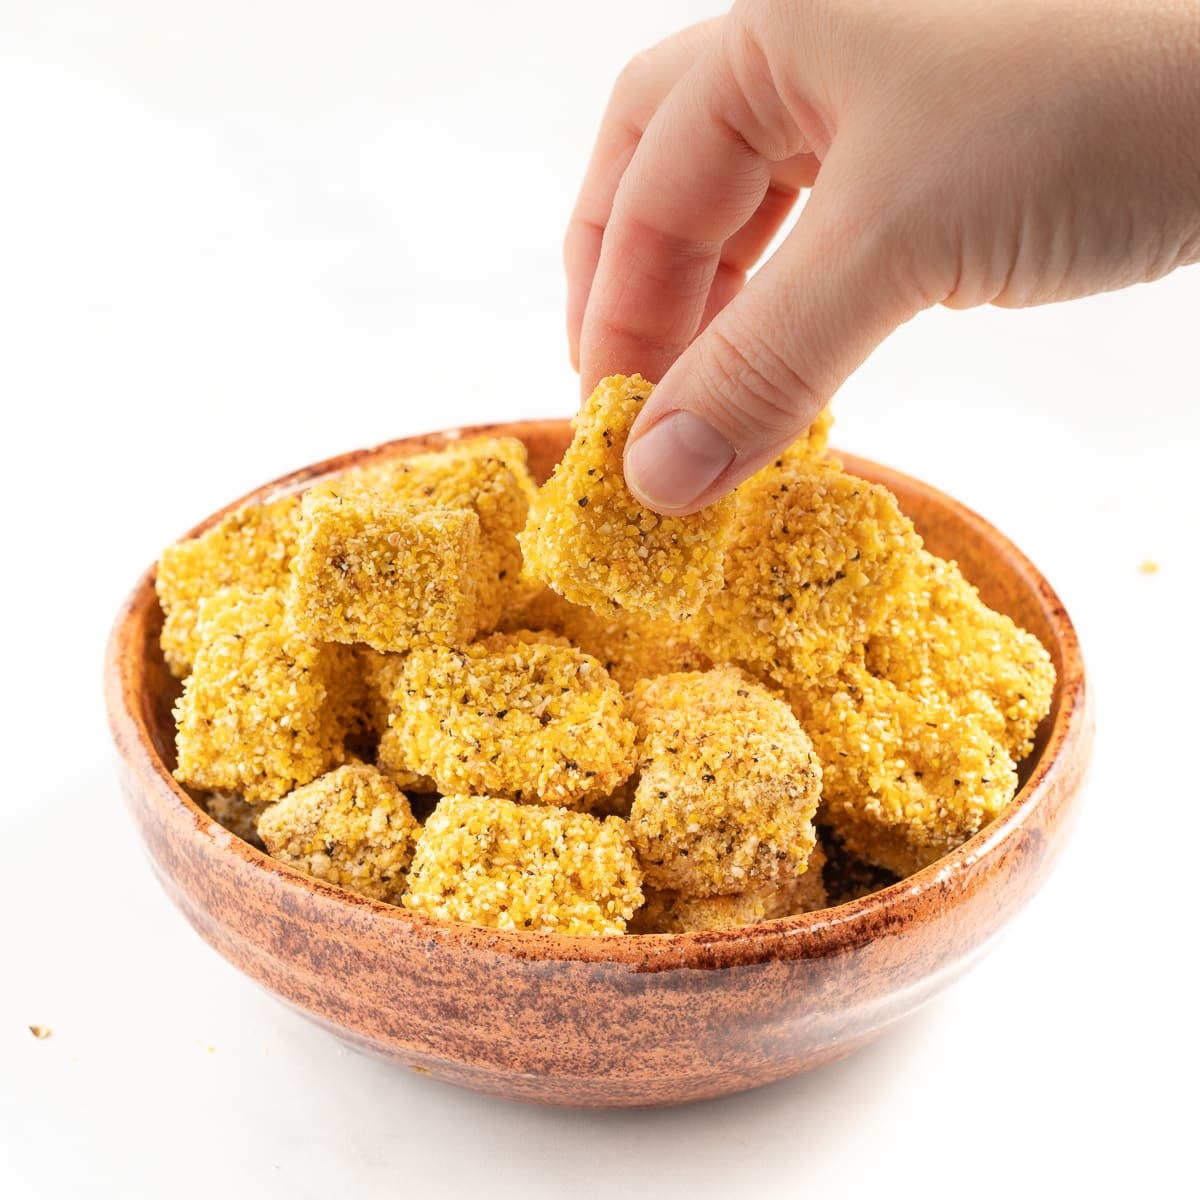 crispy tofu pieces in a brown bowl with a hand taking one